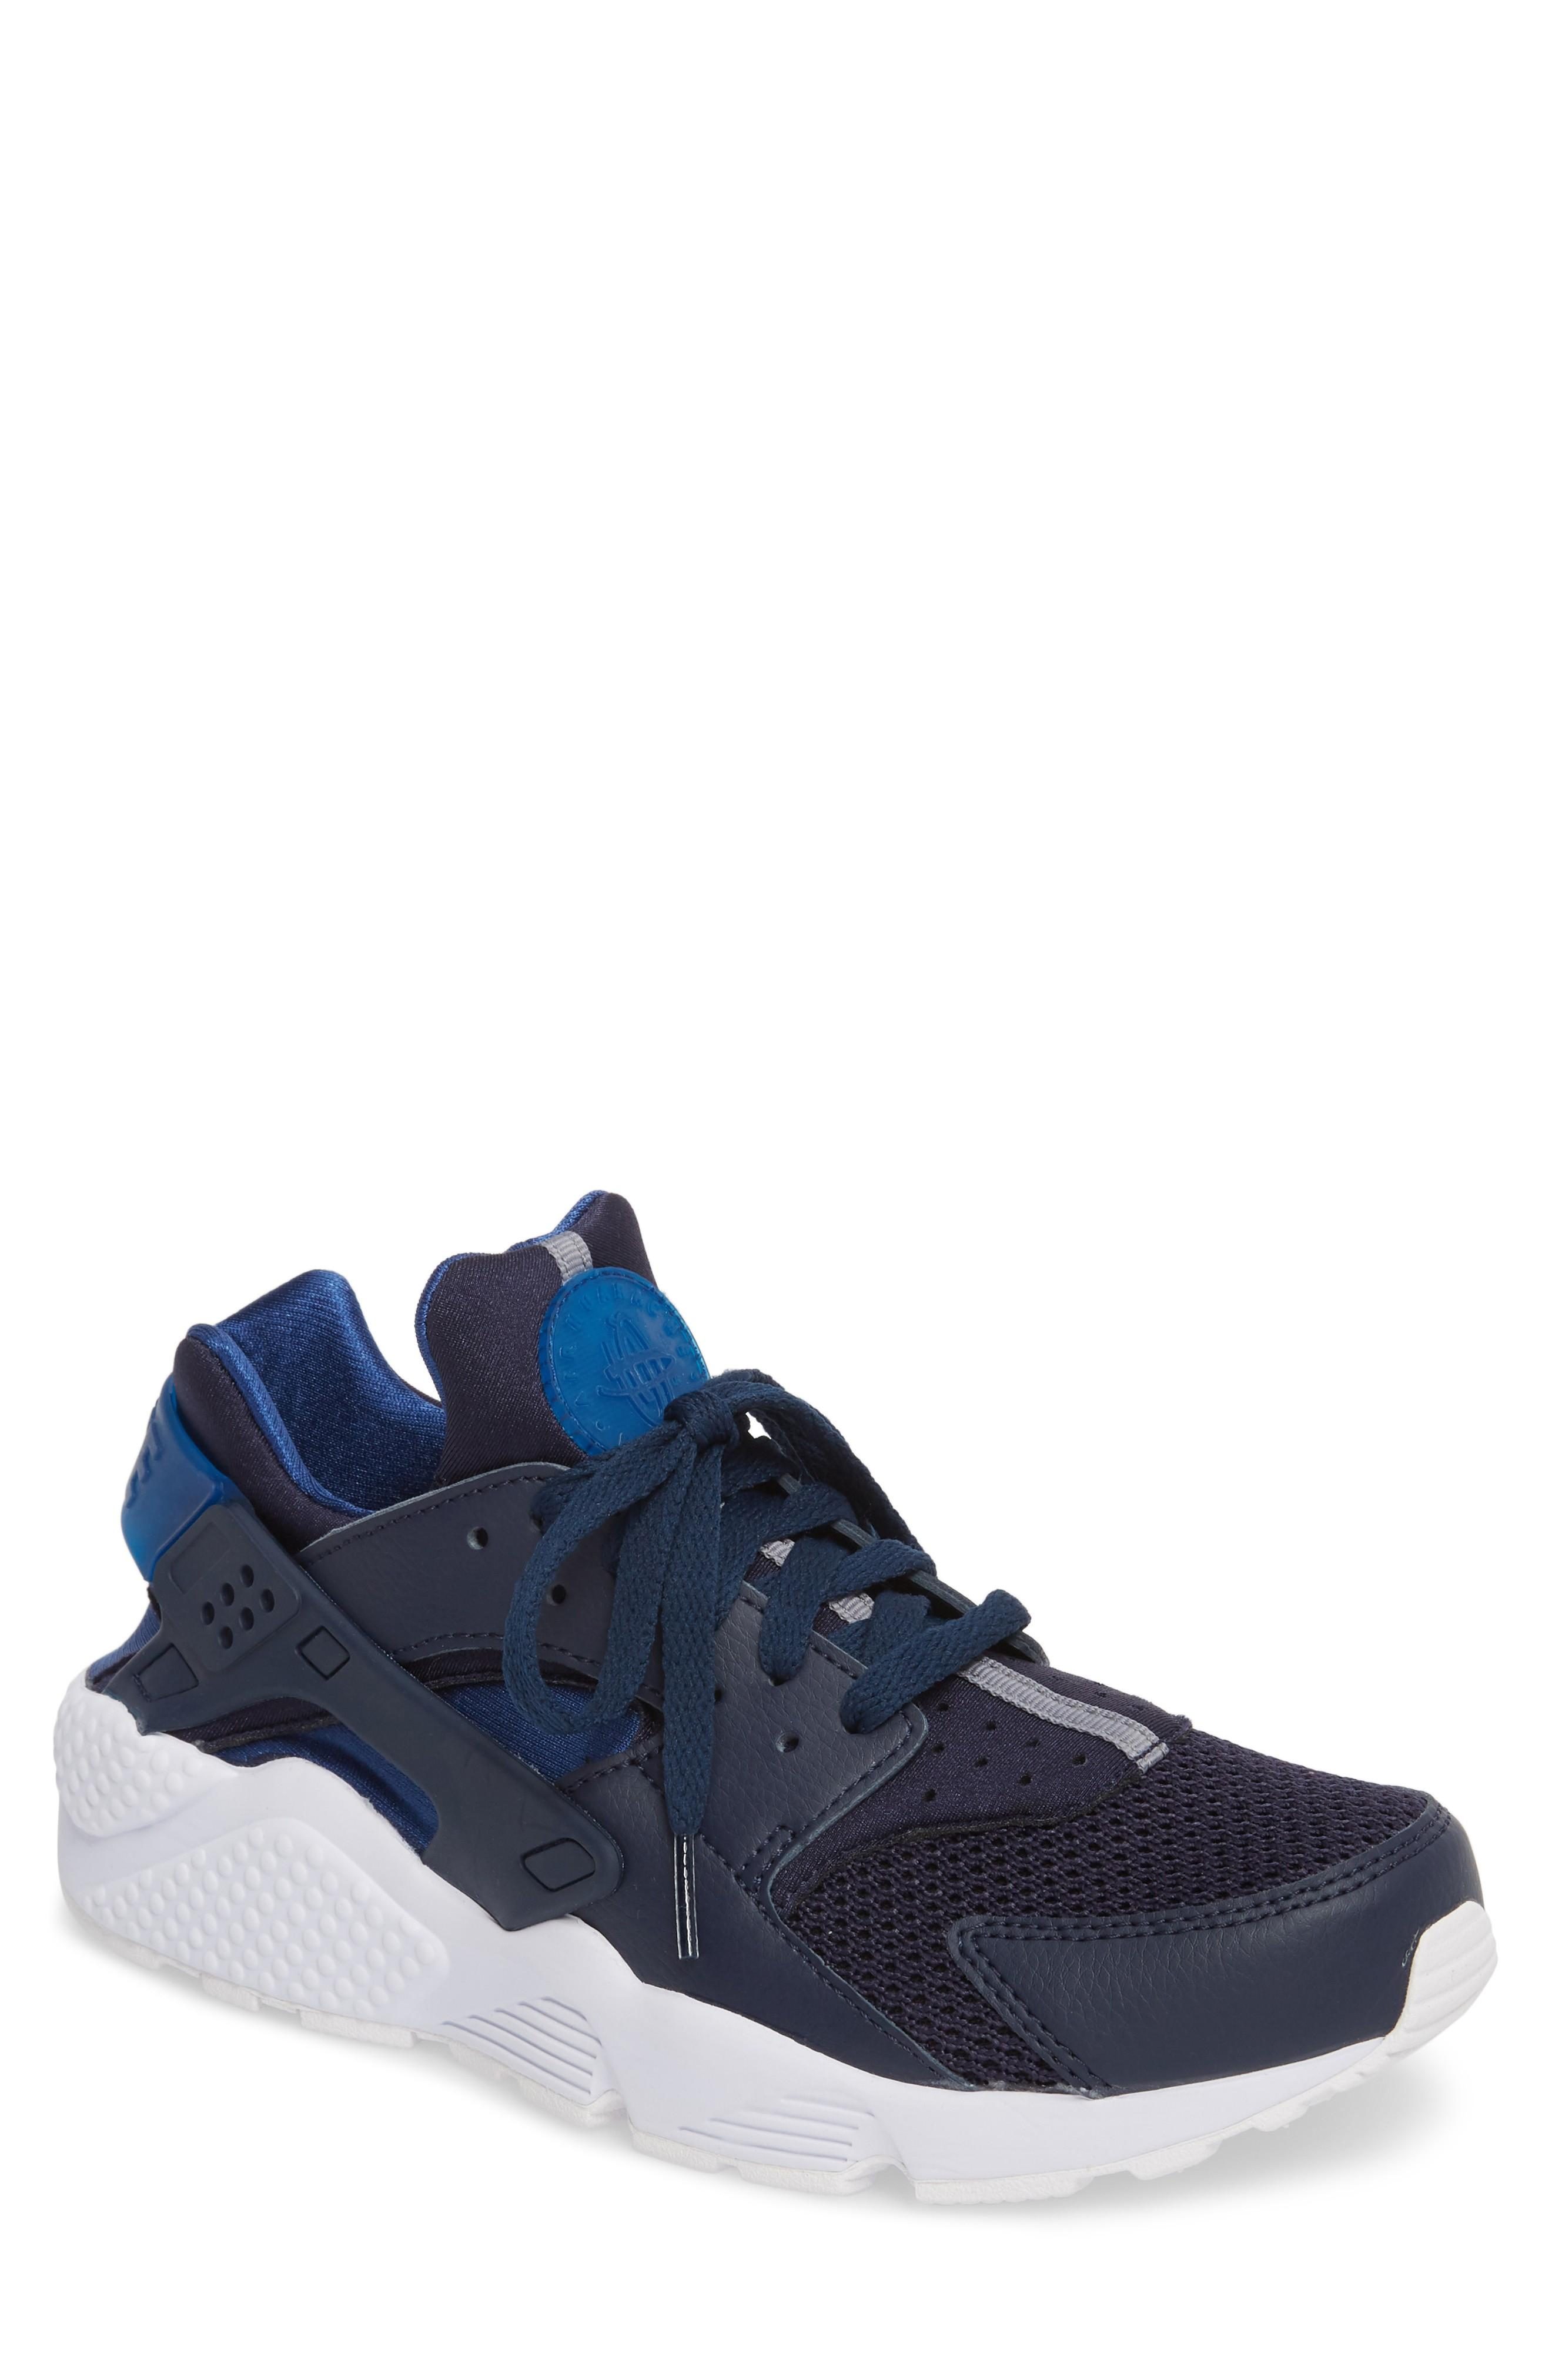 098171e695ff Nike Men s Air Huarache Run Running Sneakers From Finish Line In  Obsidian Gym Blue-